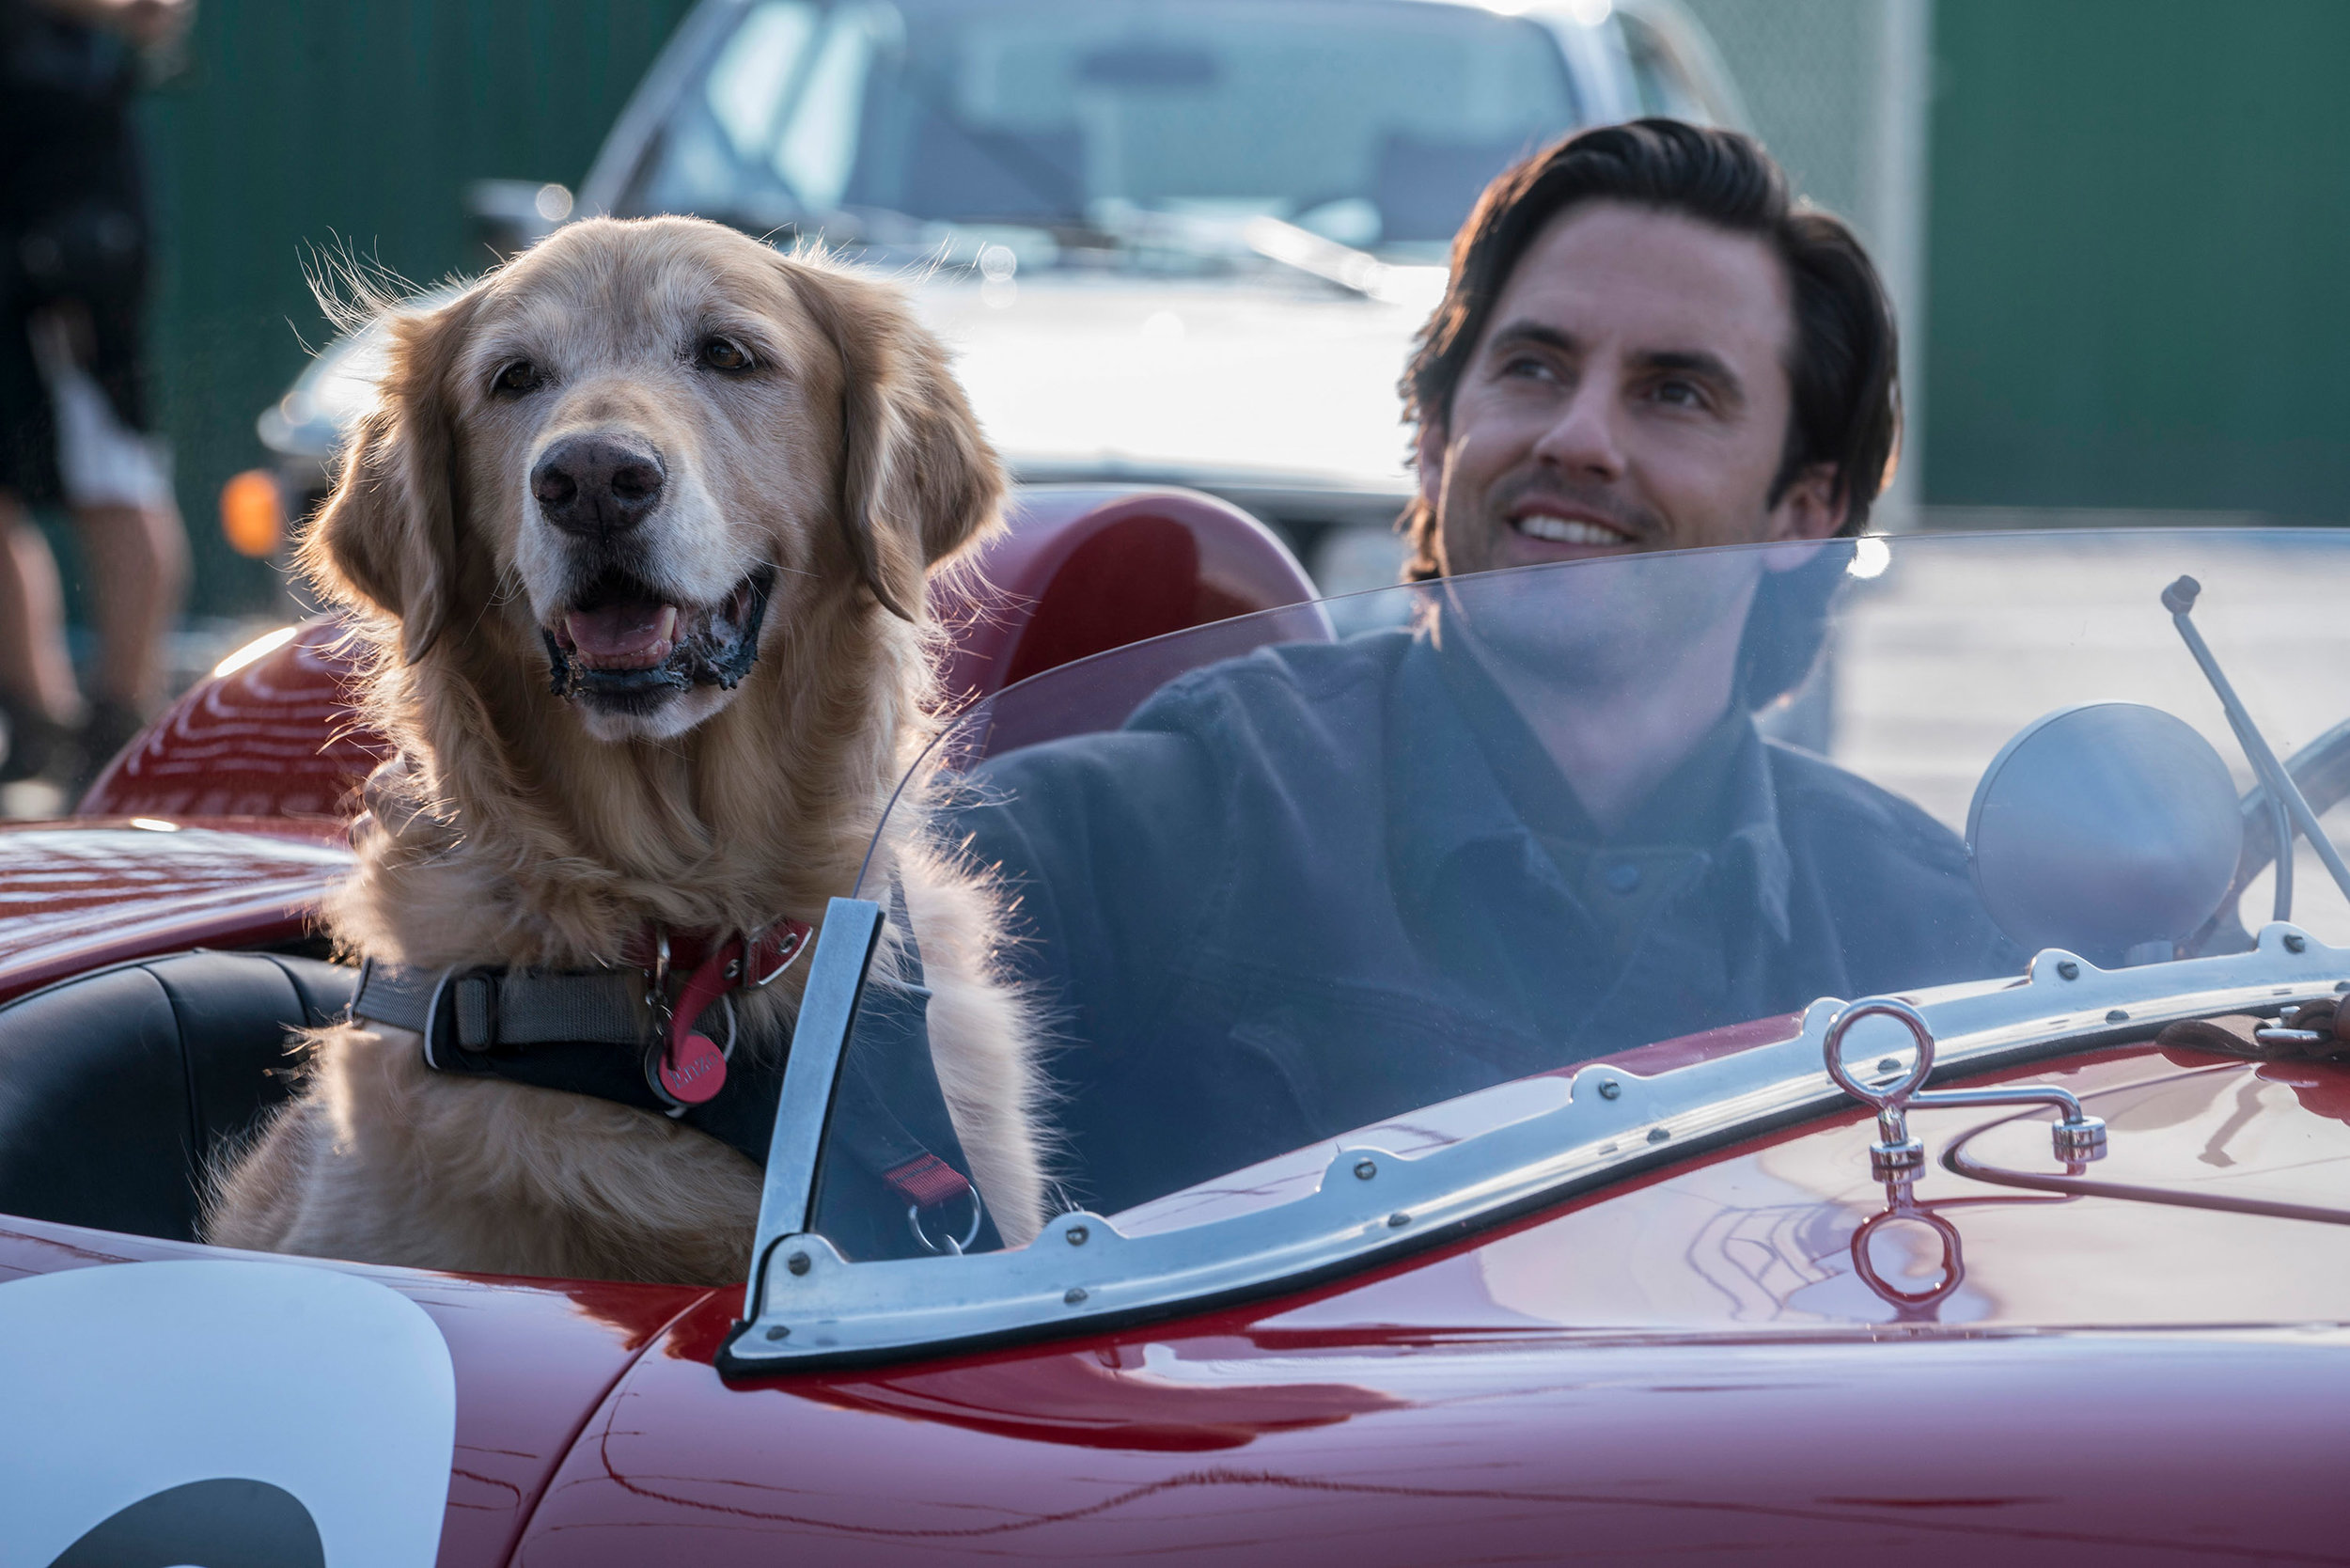 Enzo and his race car driver buddy Denny in The Art of Racing in the Rain